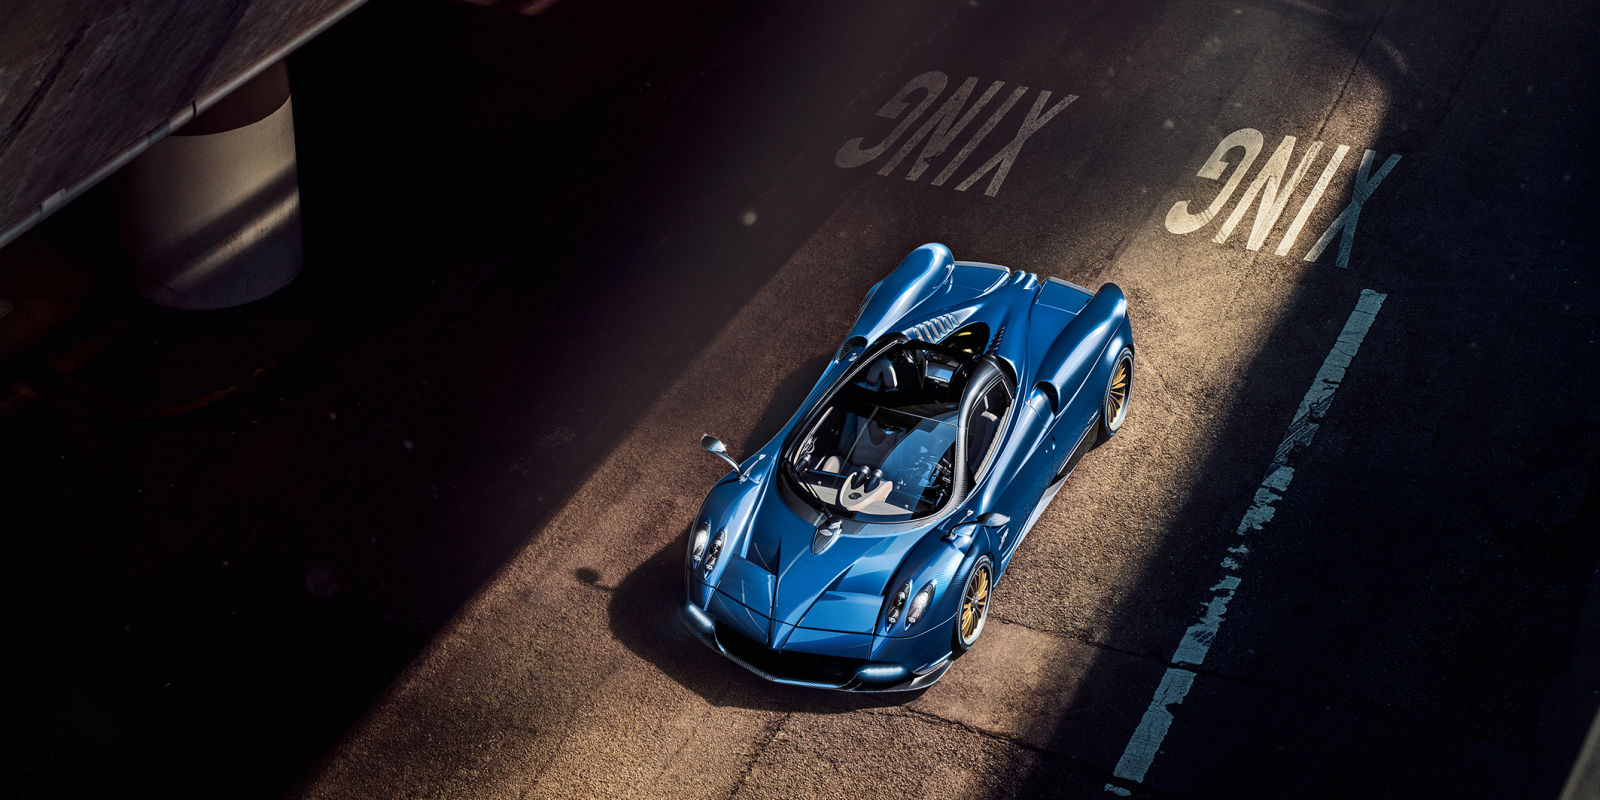 Introducing the $2.4 million Pagani Huayra Roadster : Luxurylaunches